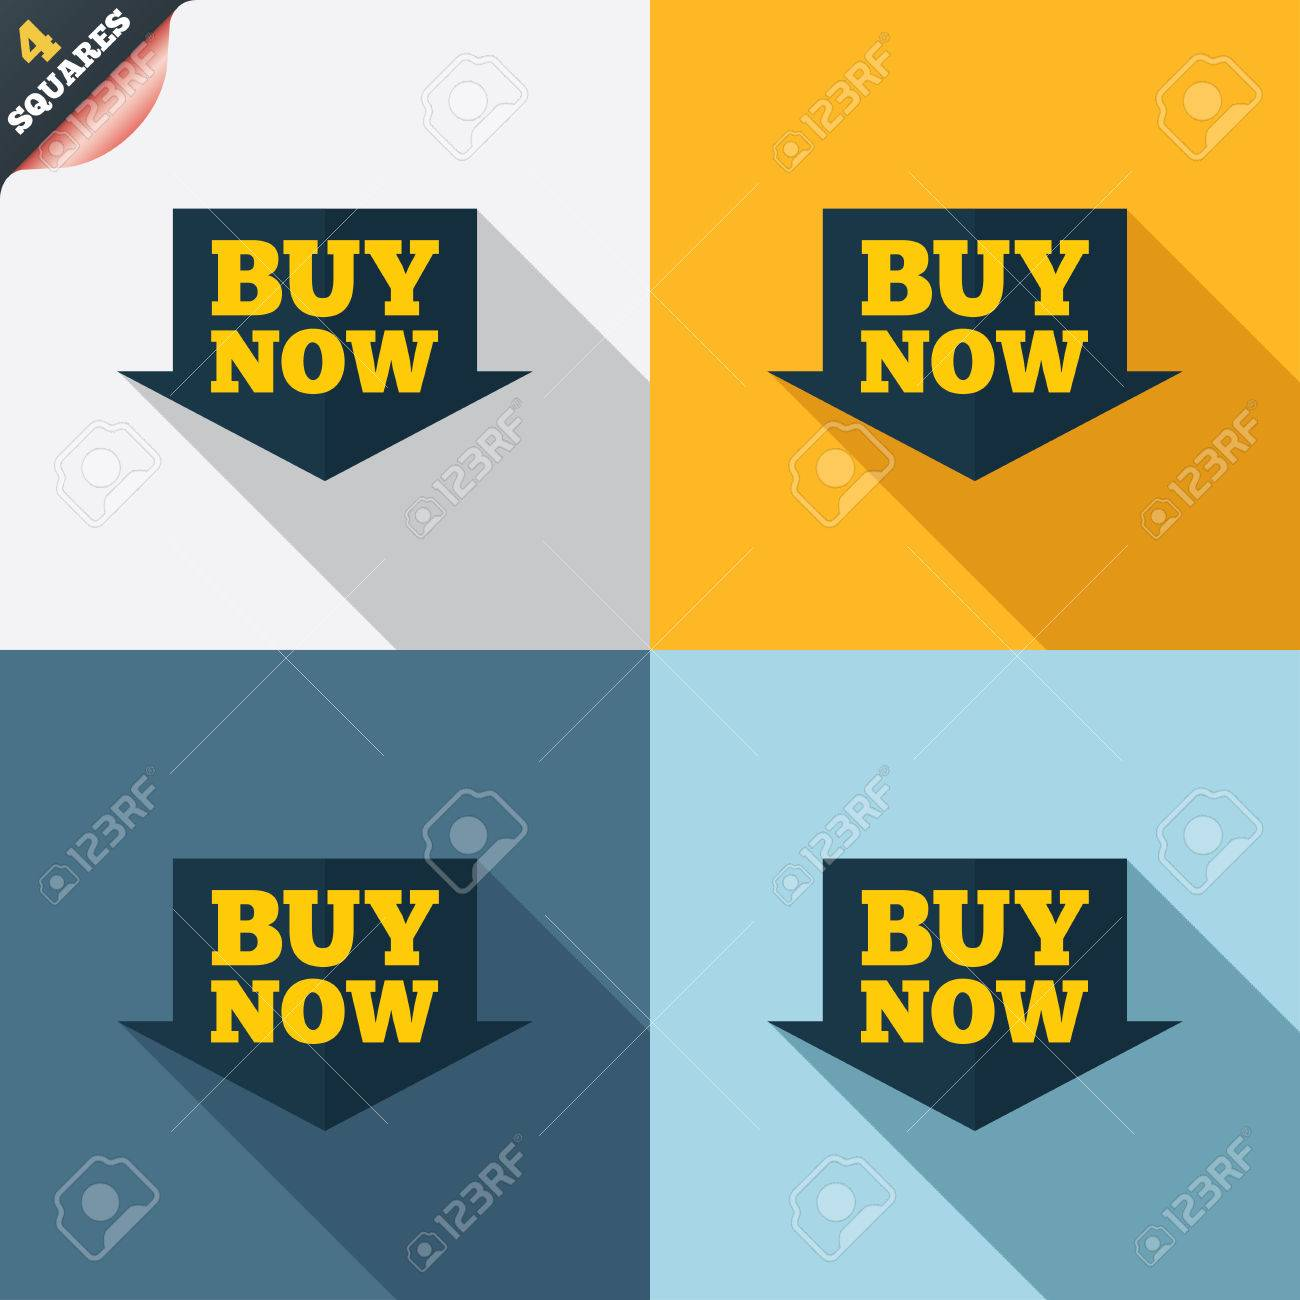 Bank Of America's Stock Buy Now Sign Icon Online Buying Arrow Button Four  Squares Colored Flat